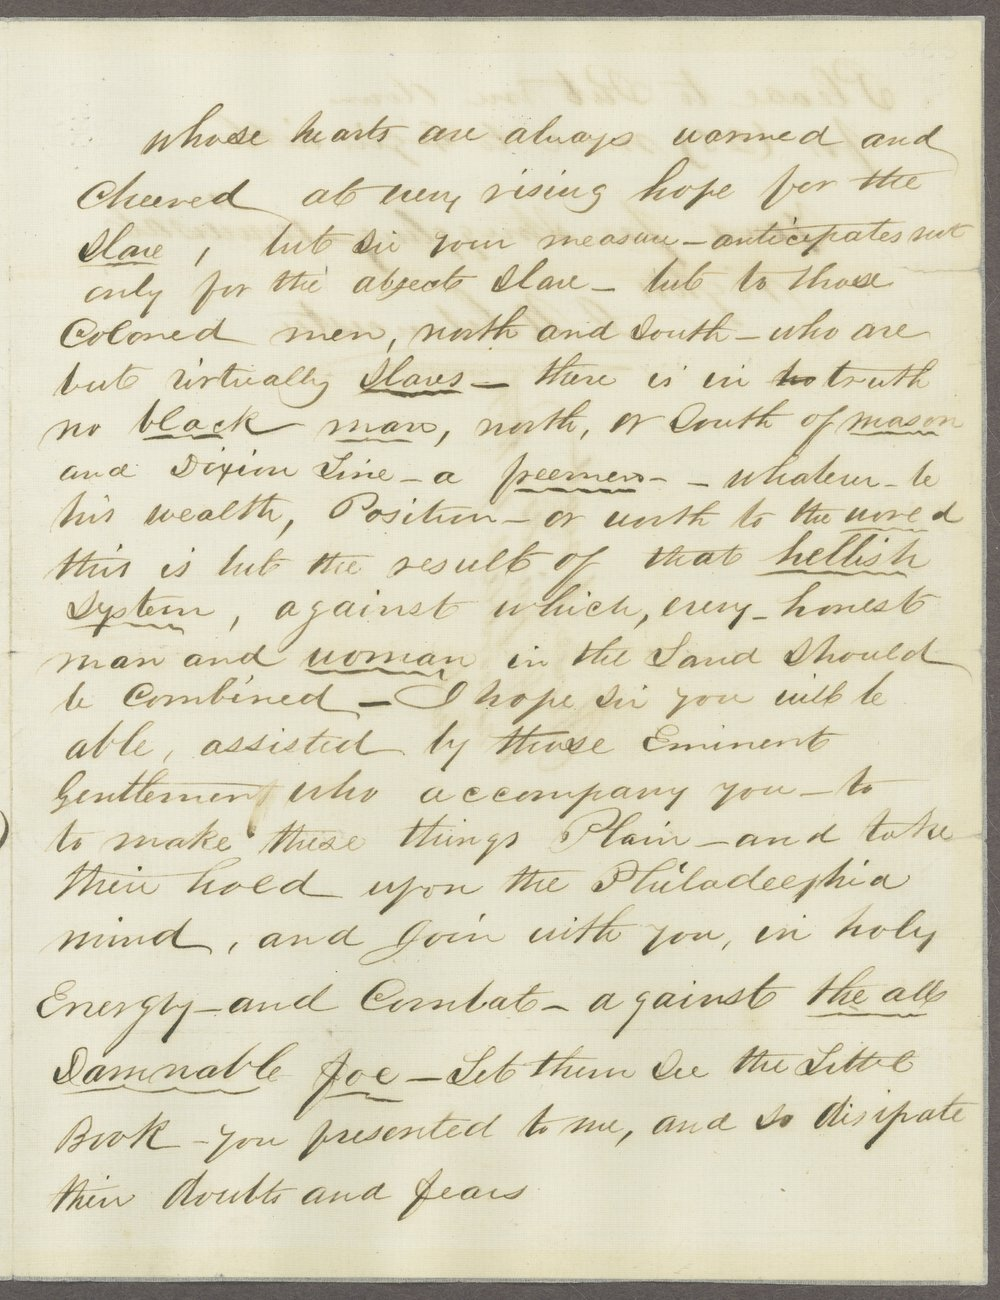 James N. Gloucester to John Brown - 3